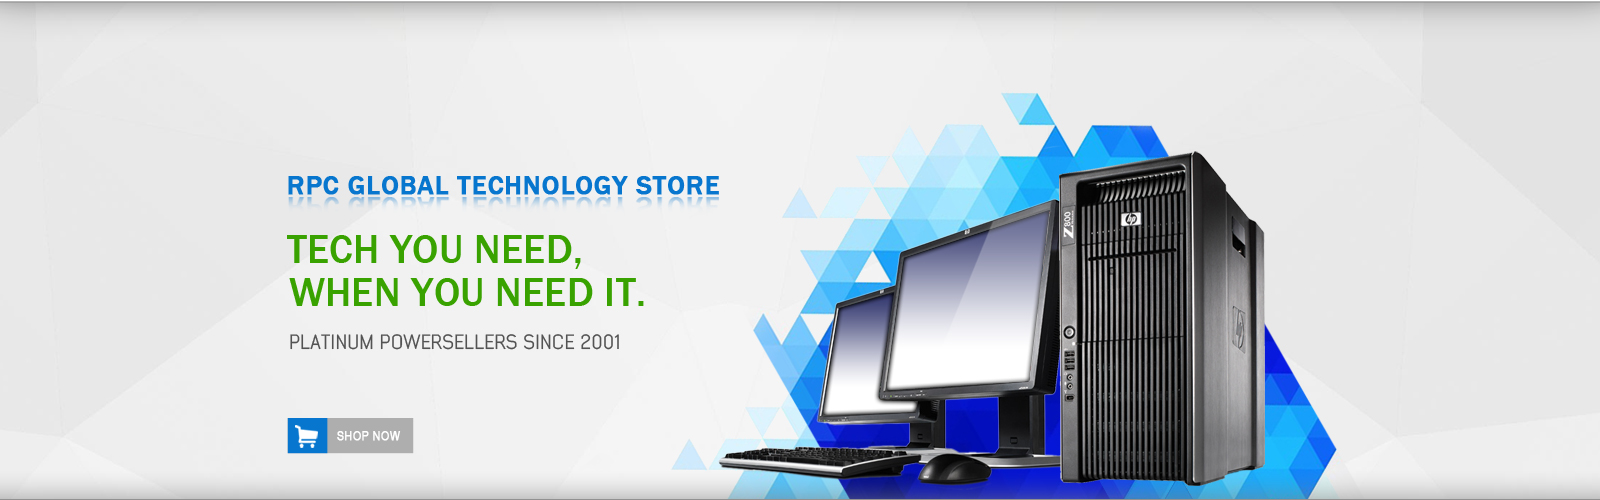 RPC Global Technology Store   eBay Stores